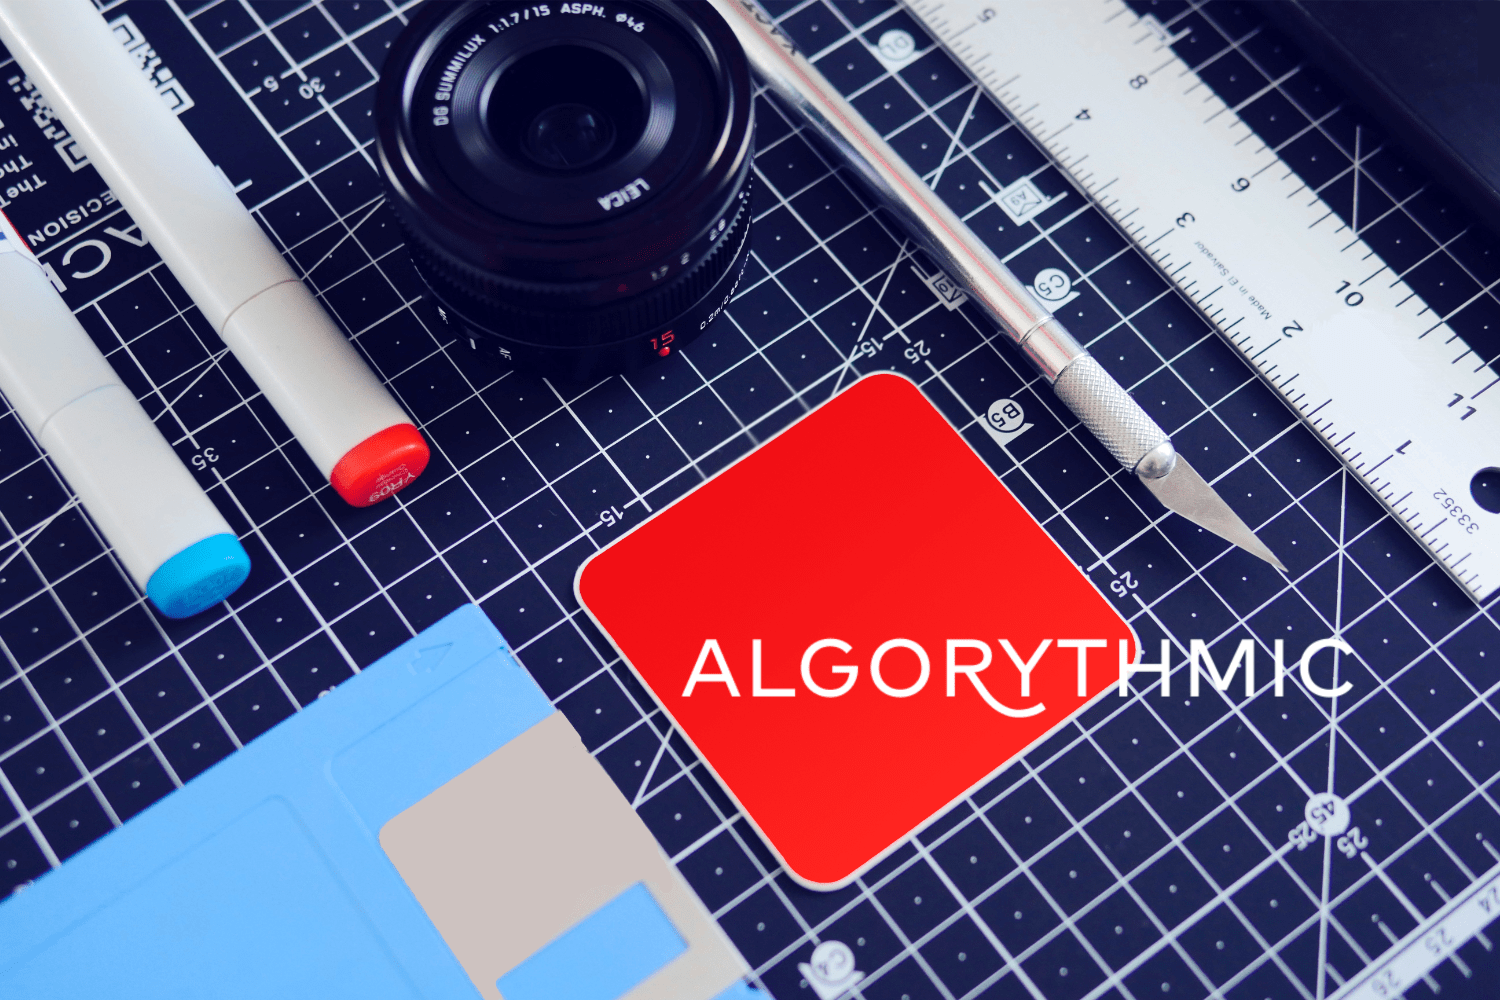 Algorythmic